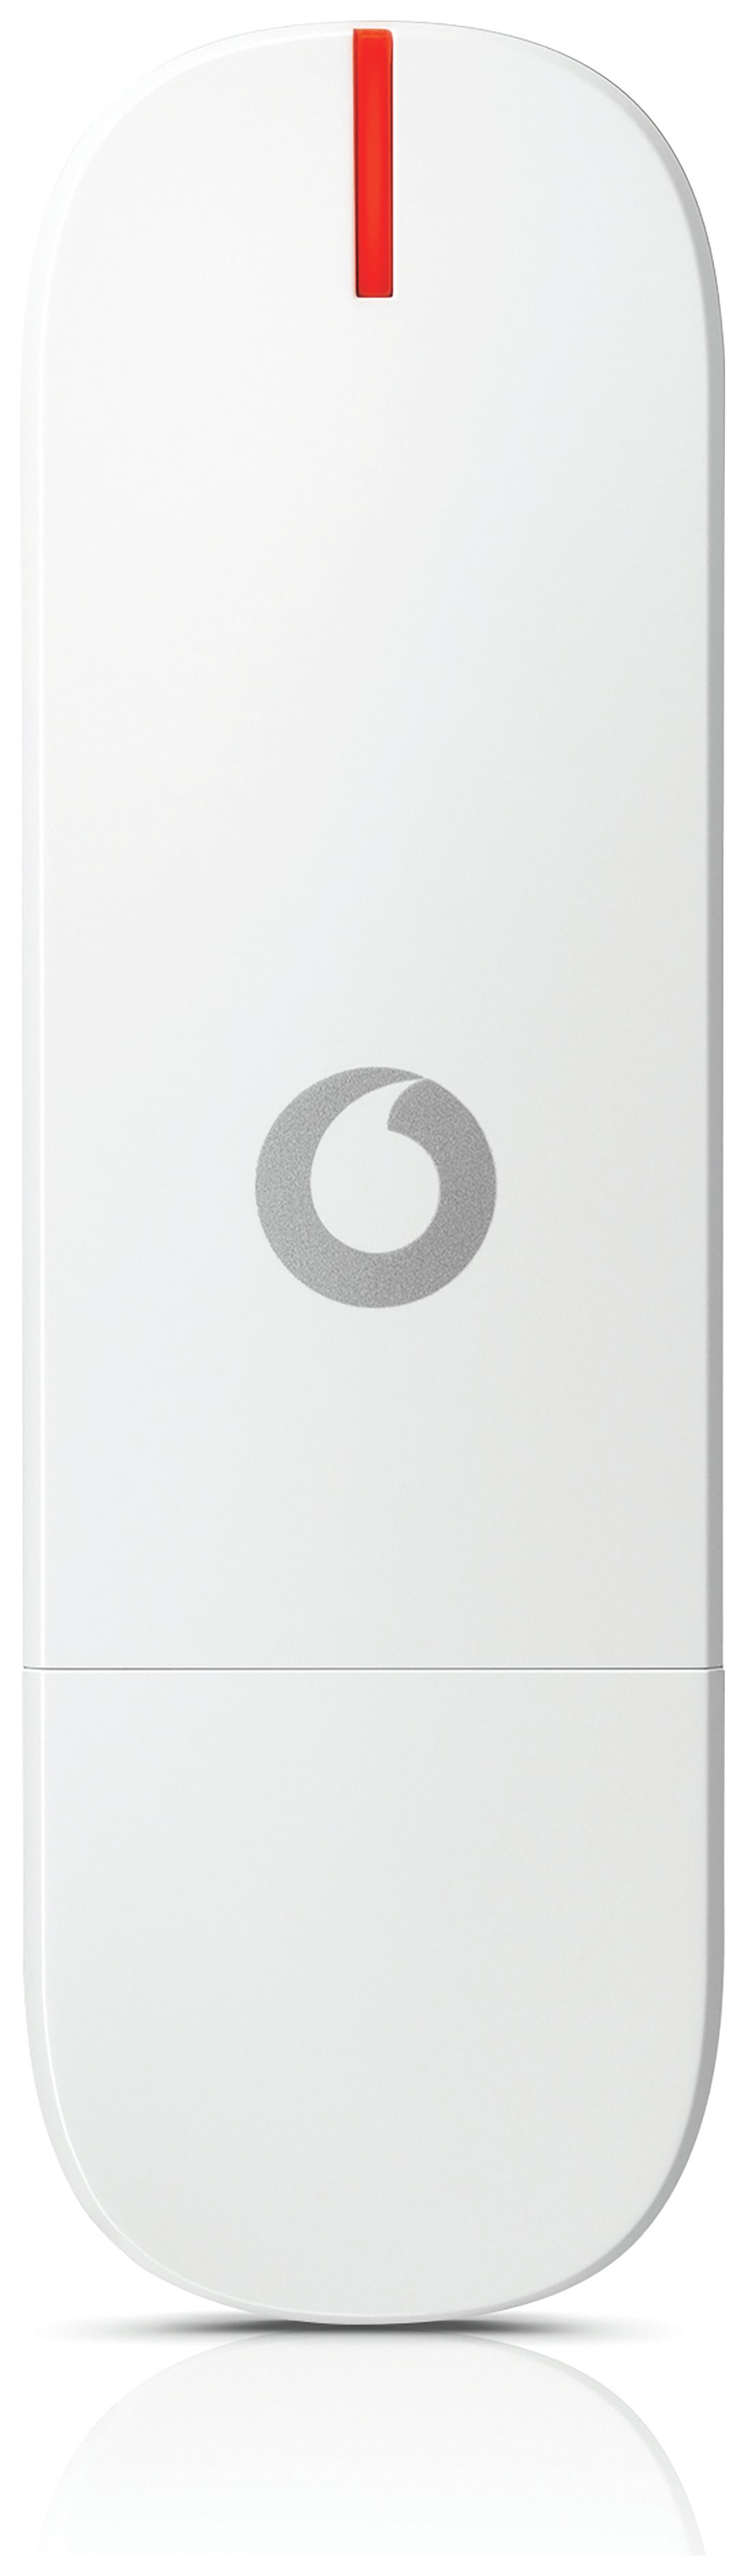 Vodafone 3G USB Data Dongle